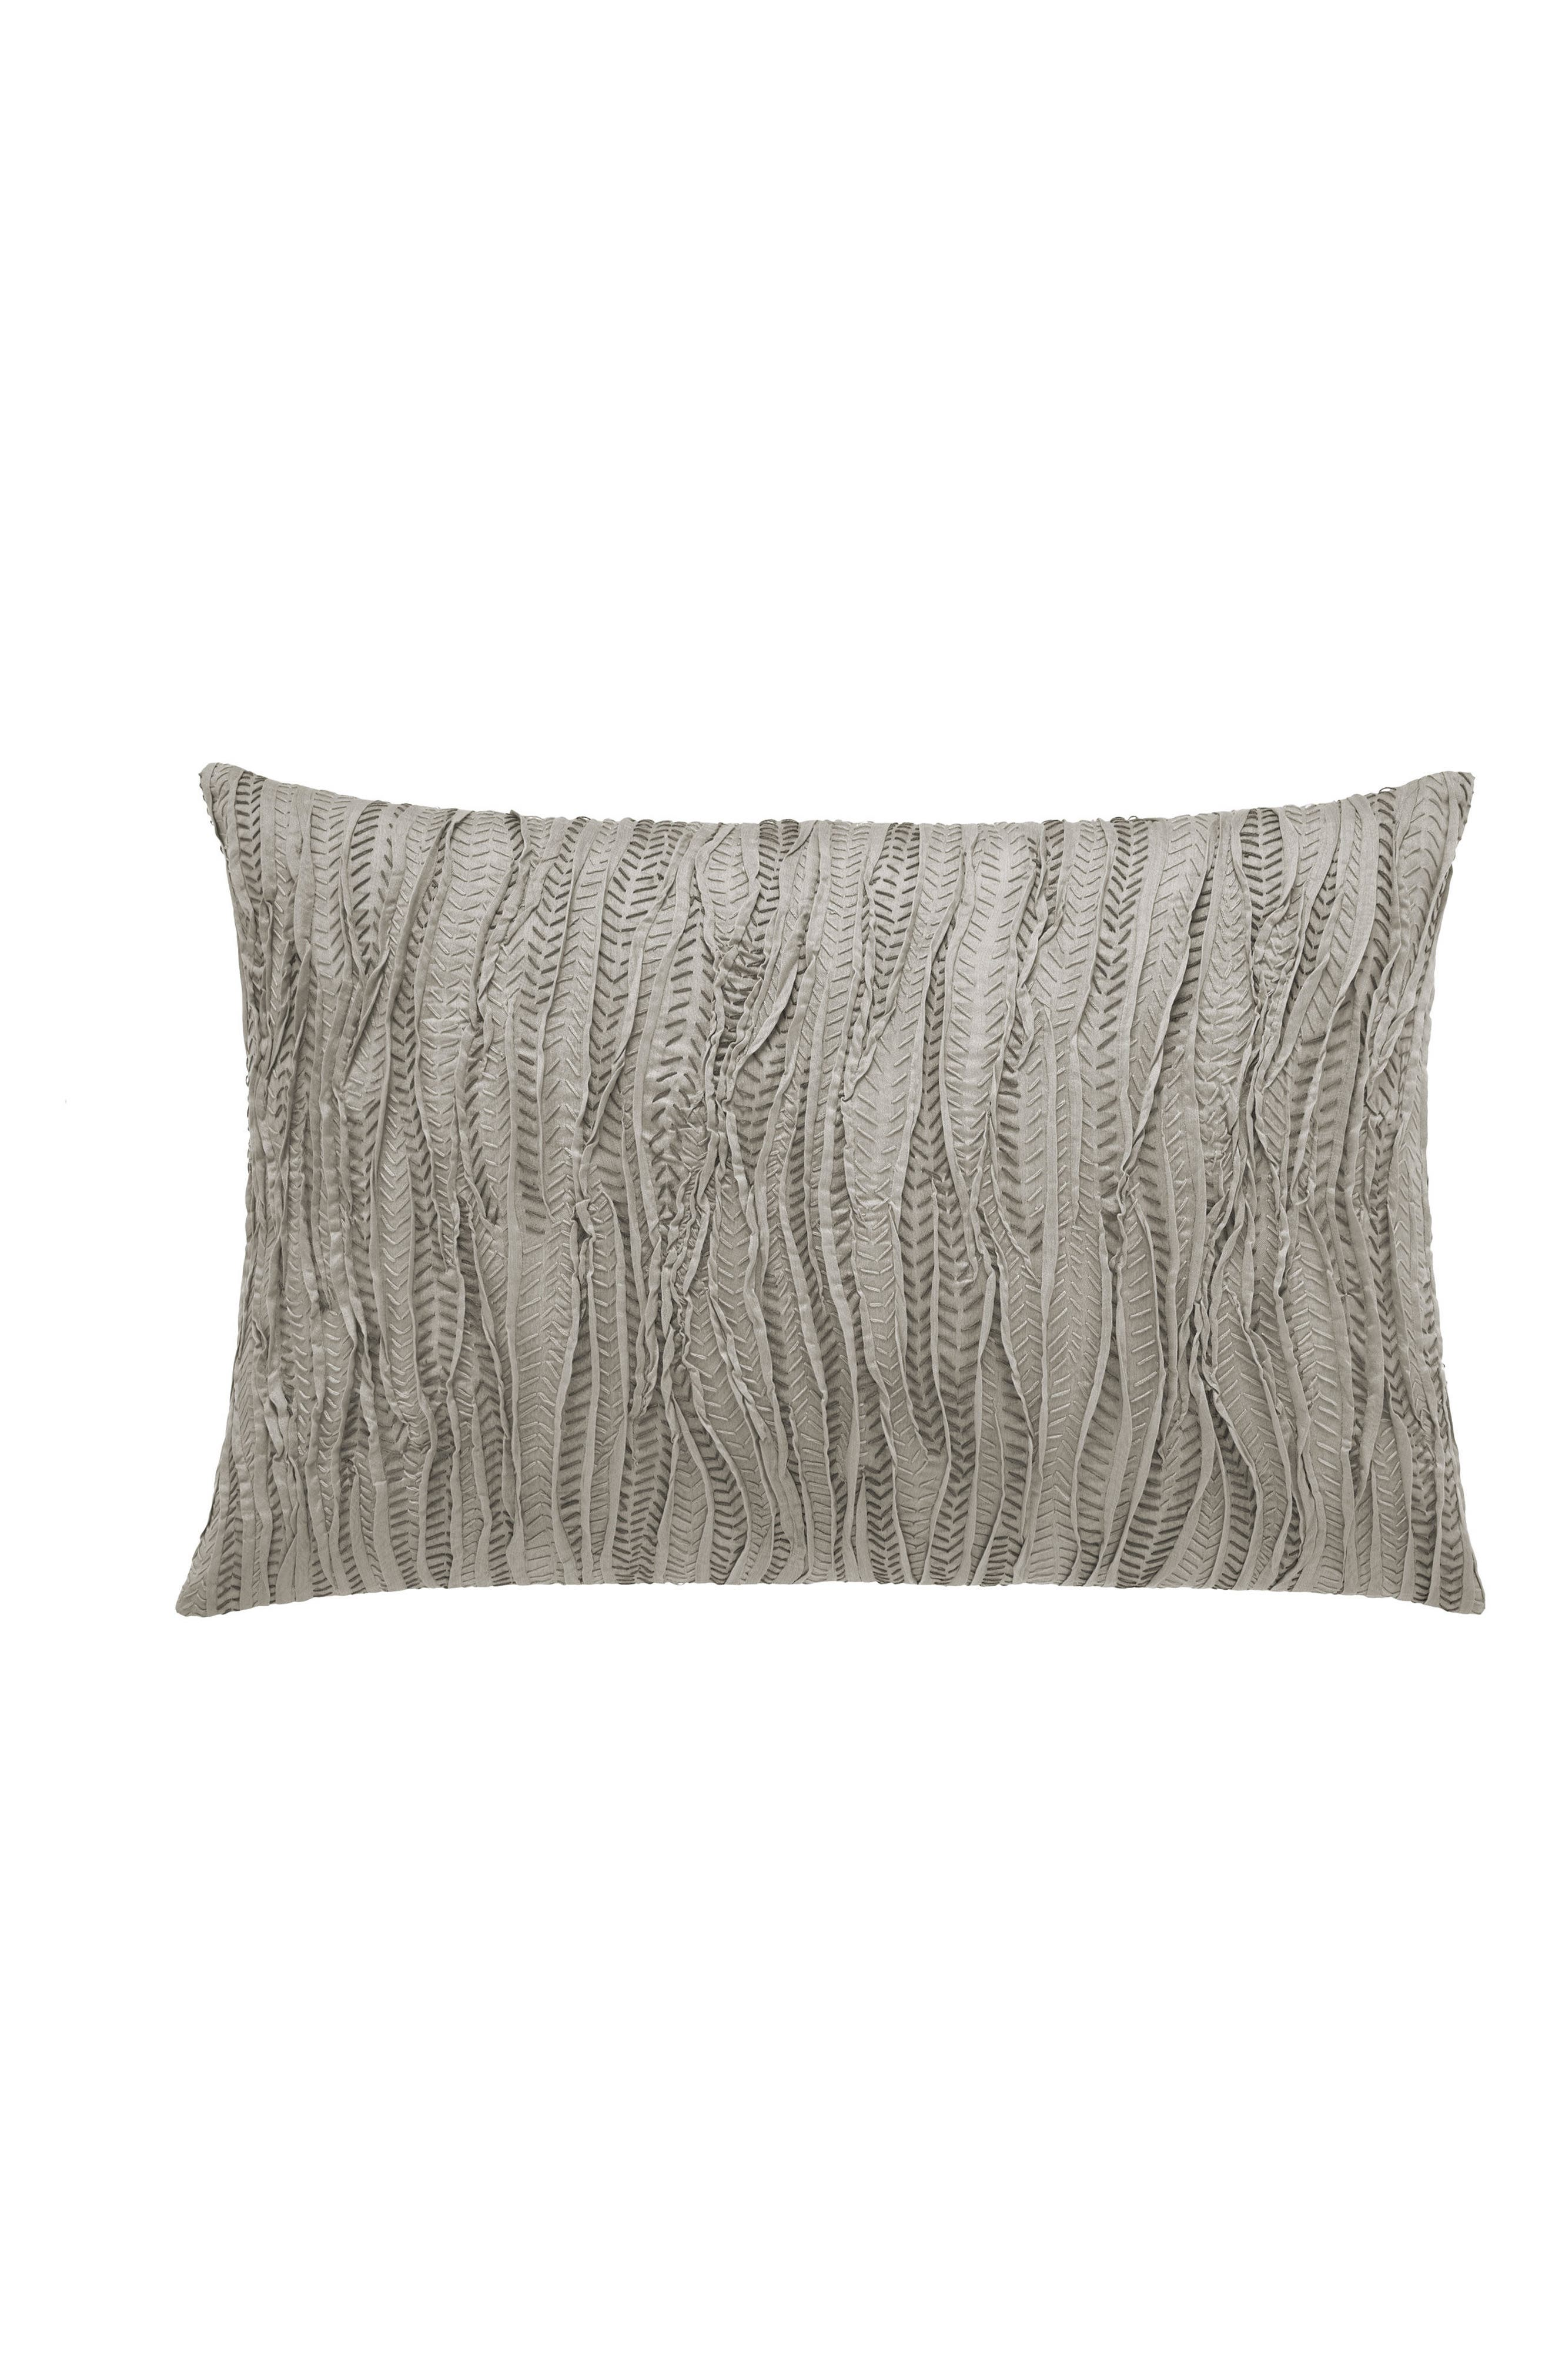 Vera Wang Lux Marble Shibori Breakfast Accent Pillow